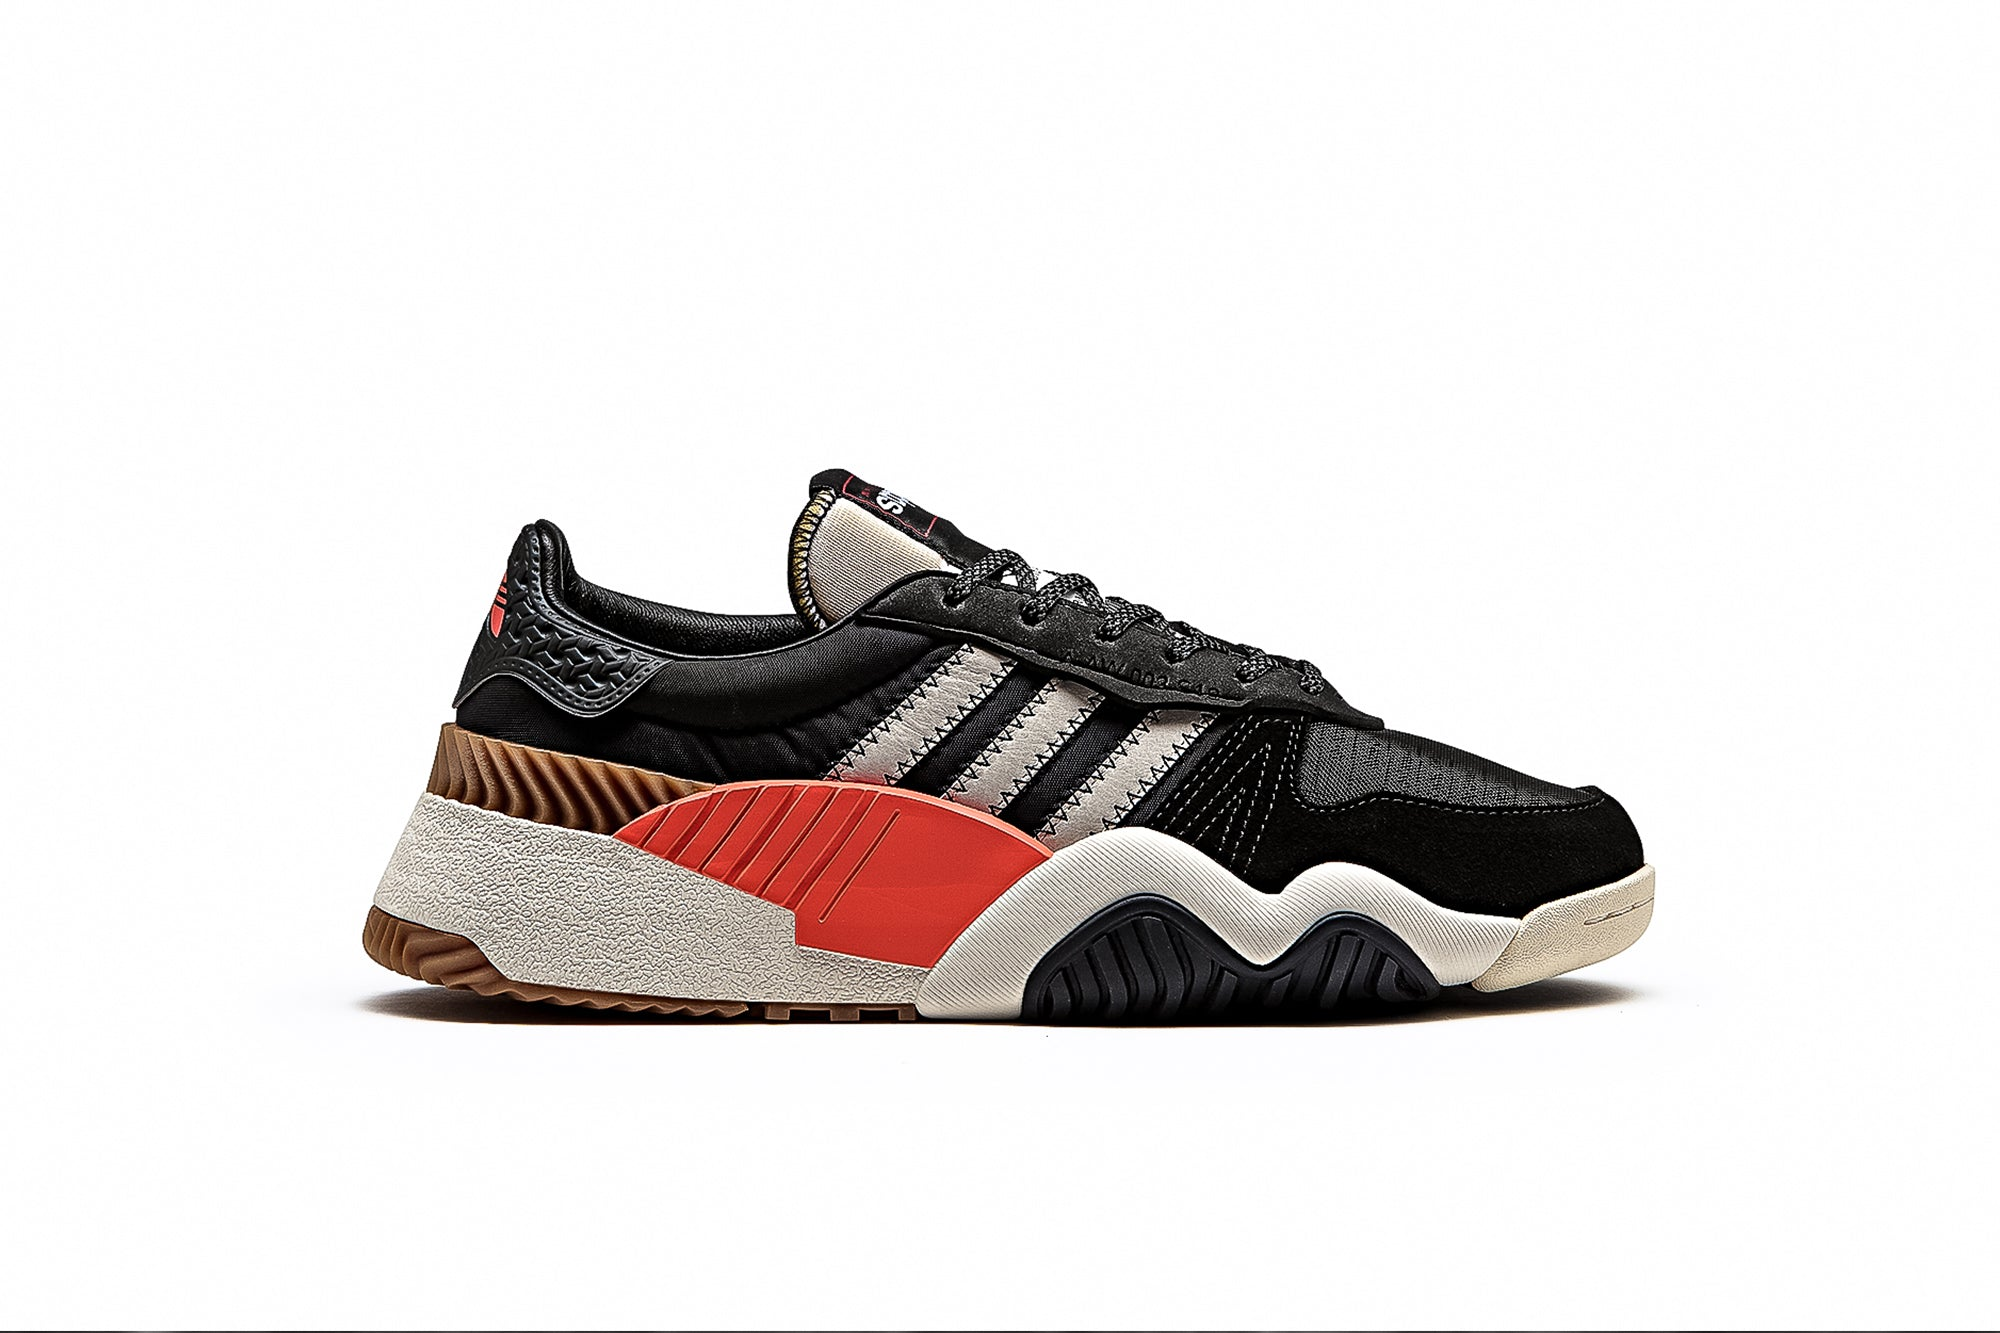 ADIDAS X ALEXANDER WANG TURNOUT TRAINER